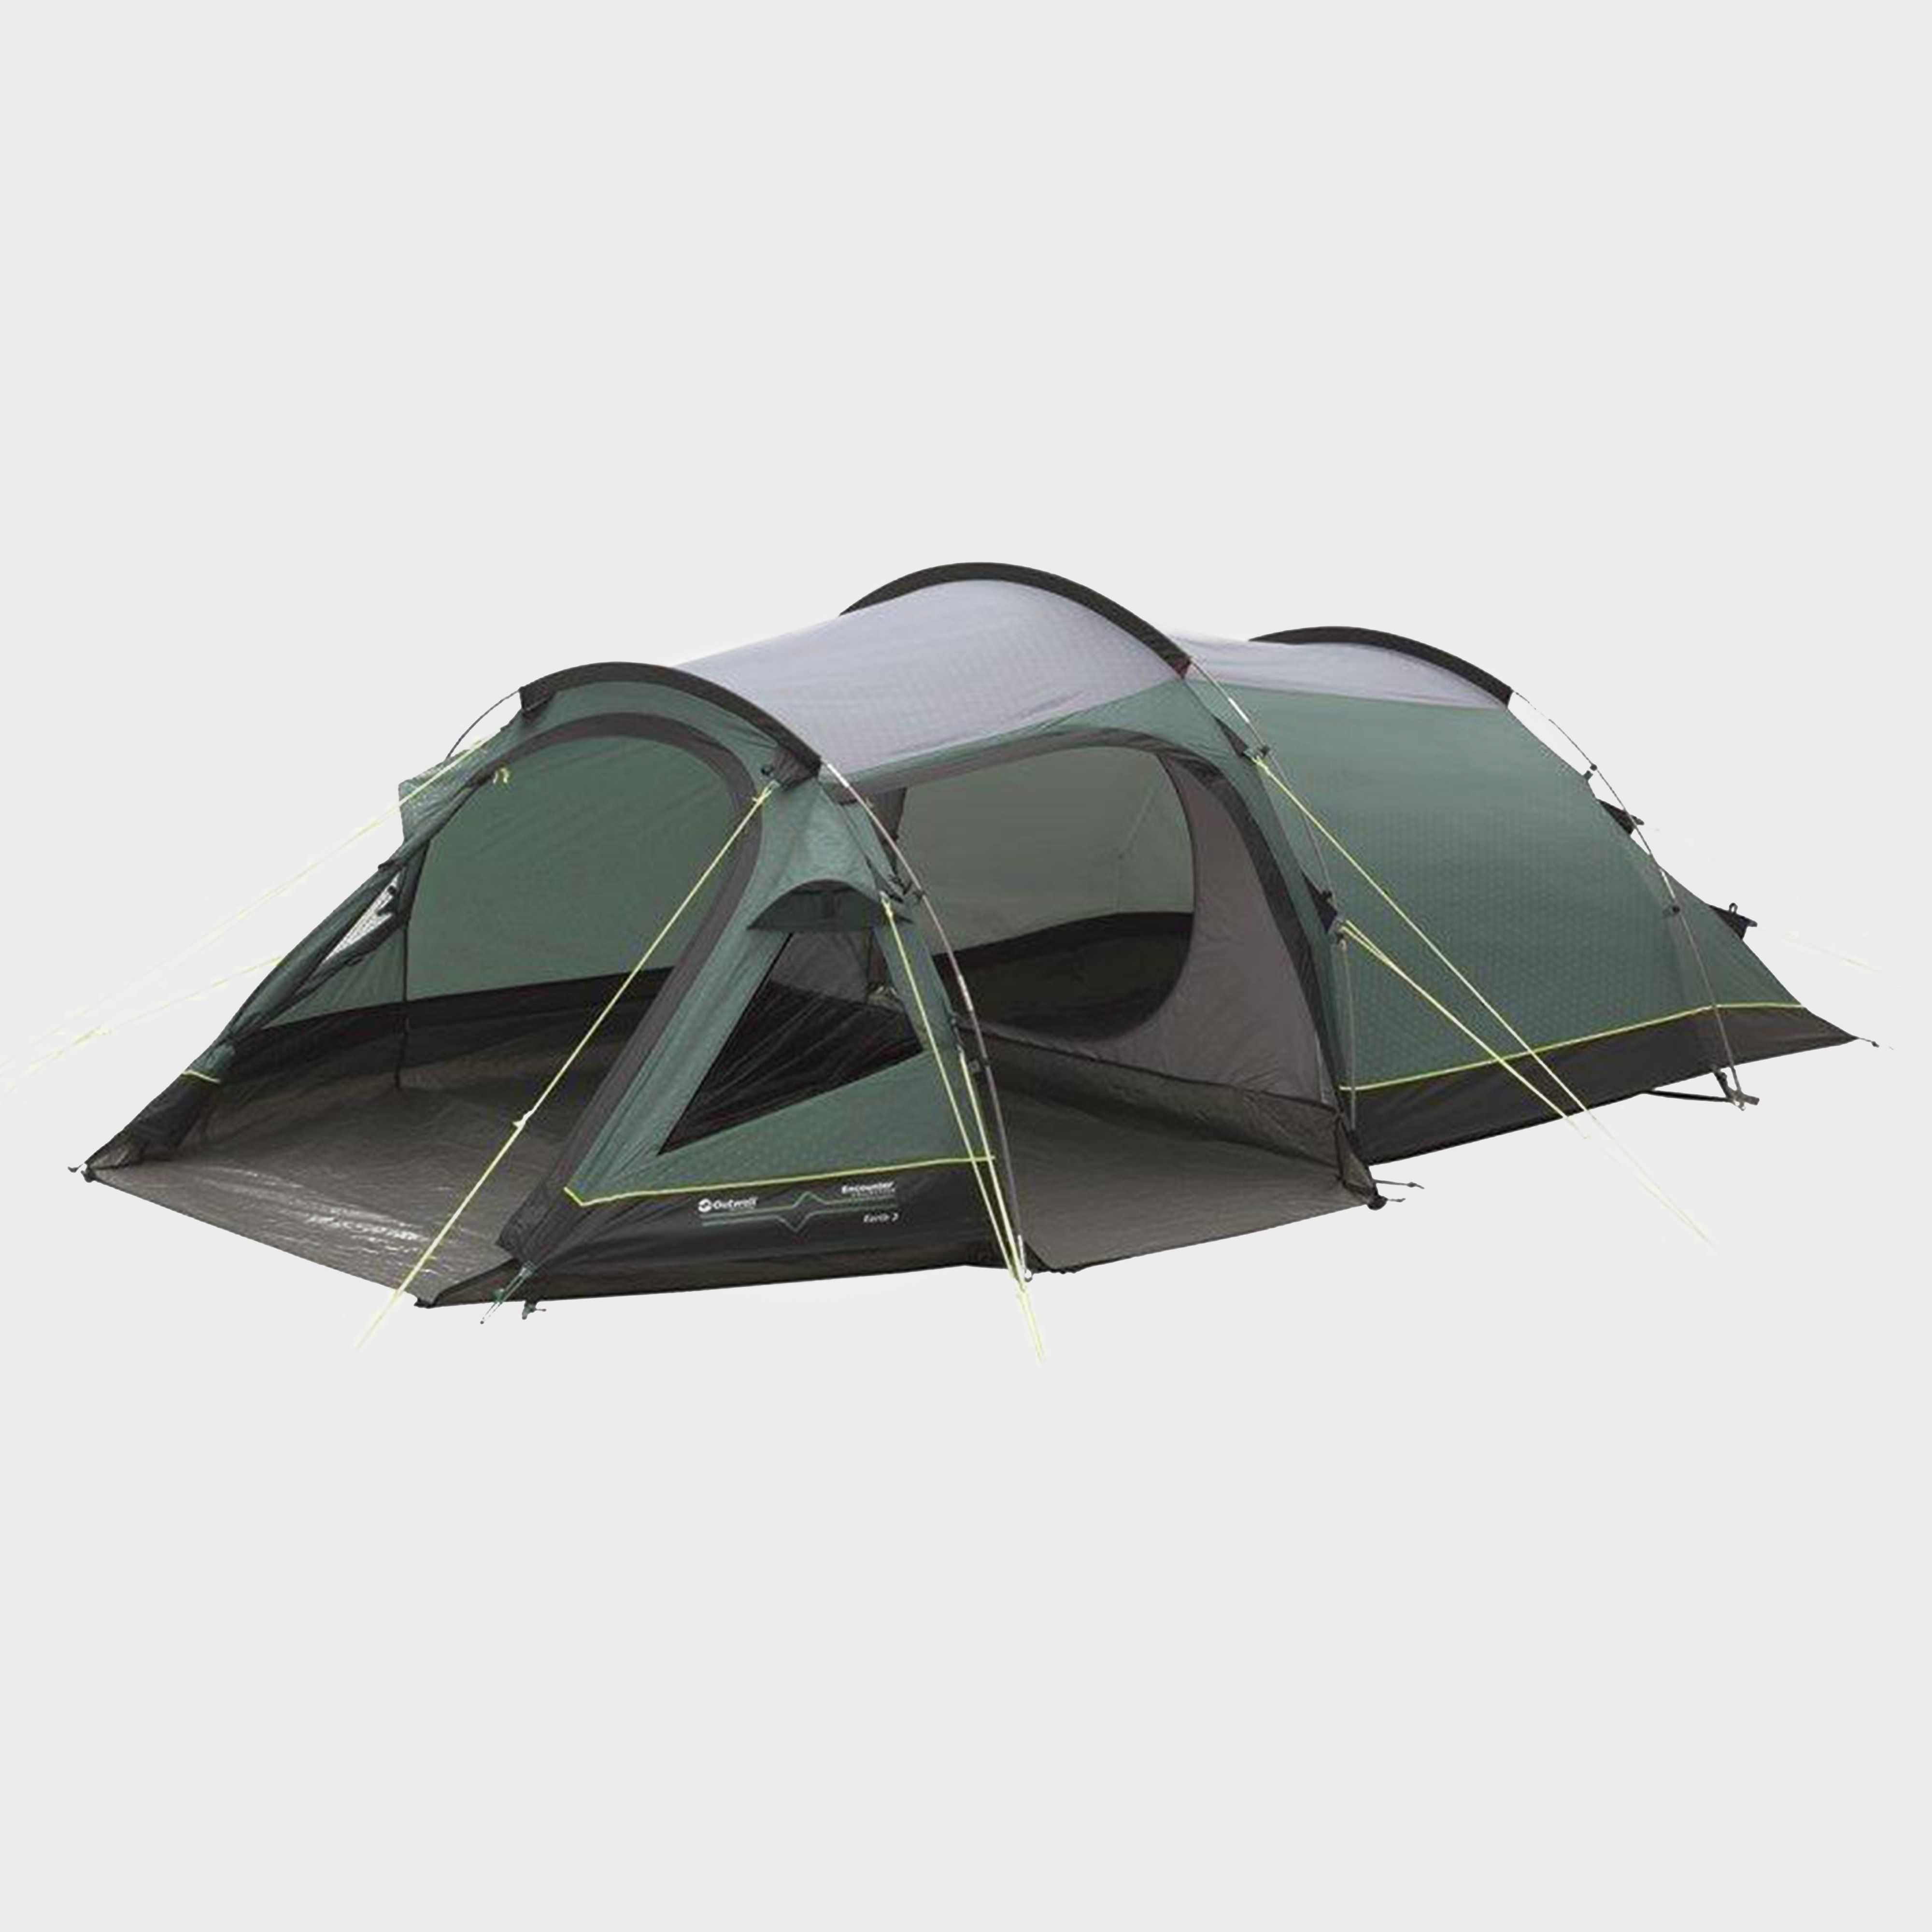 OUTWELL Encounter Earth 3 Tent